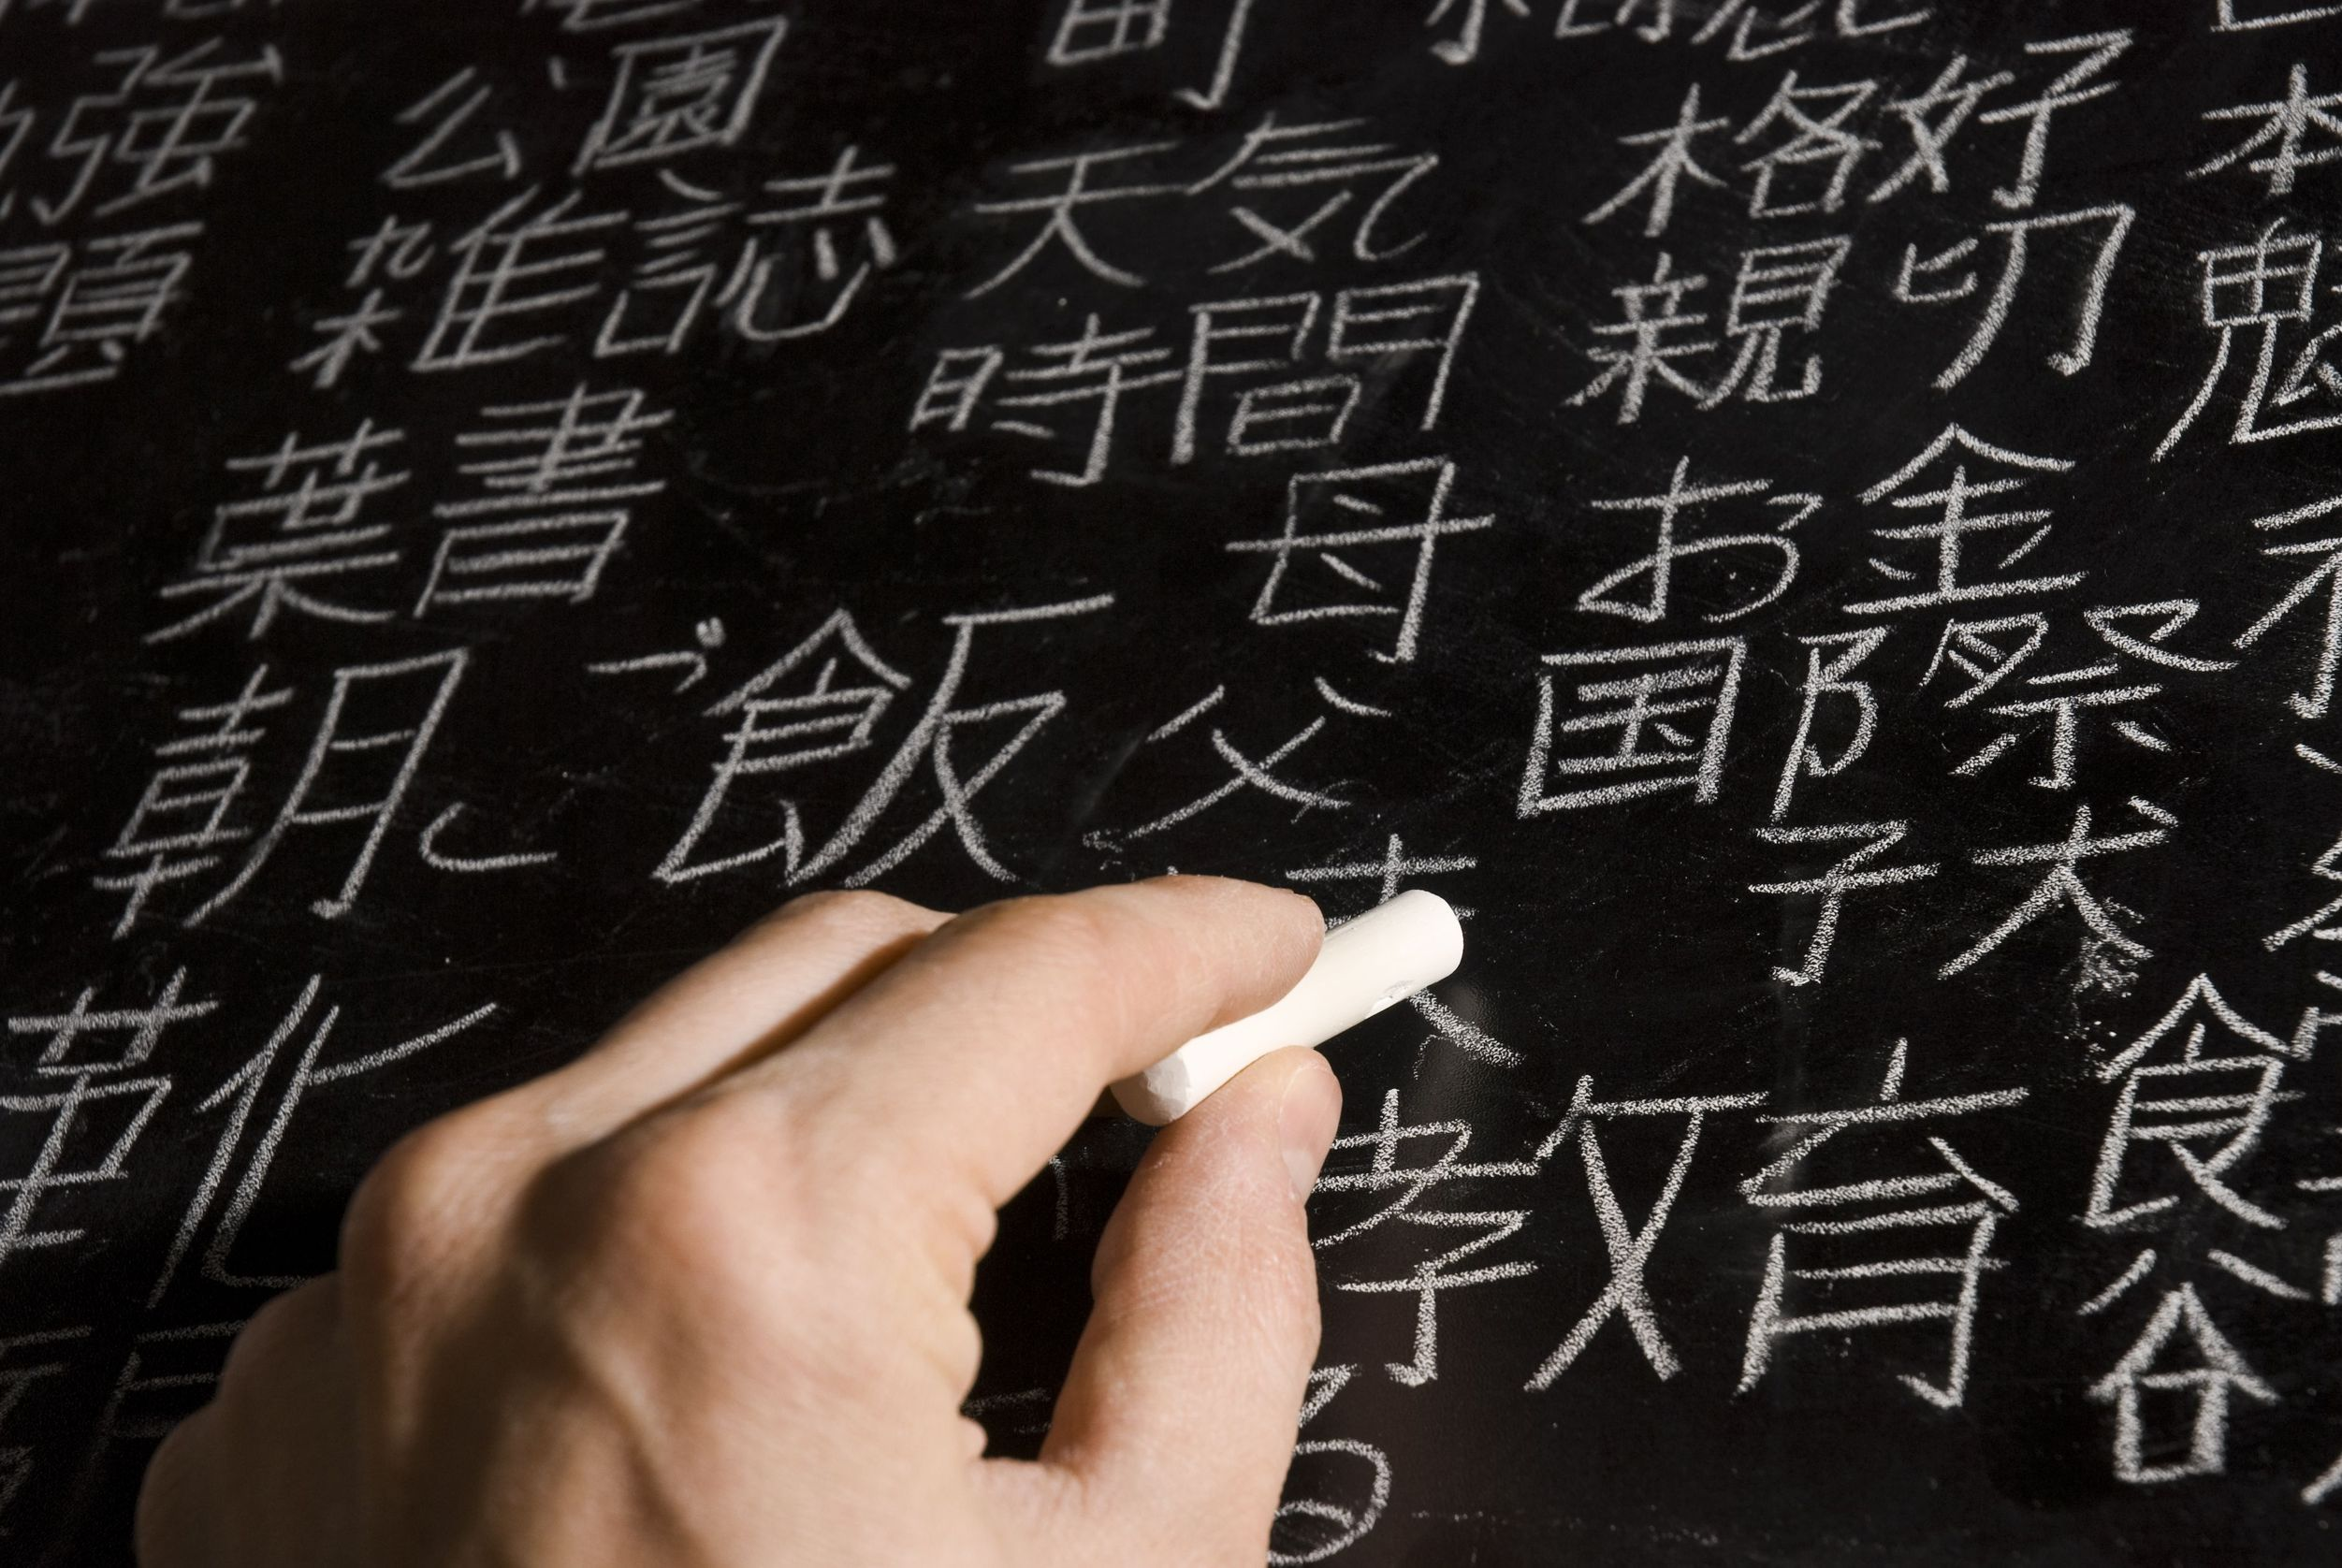 Close up of male hand writing Chinese and Japanese characters on blackboard